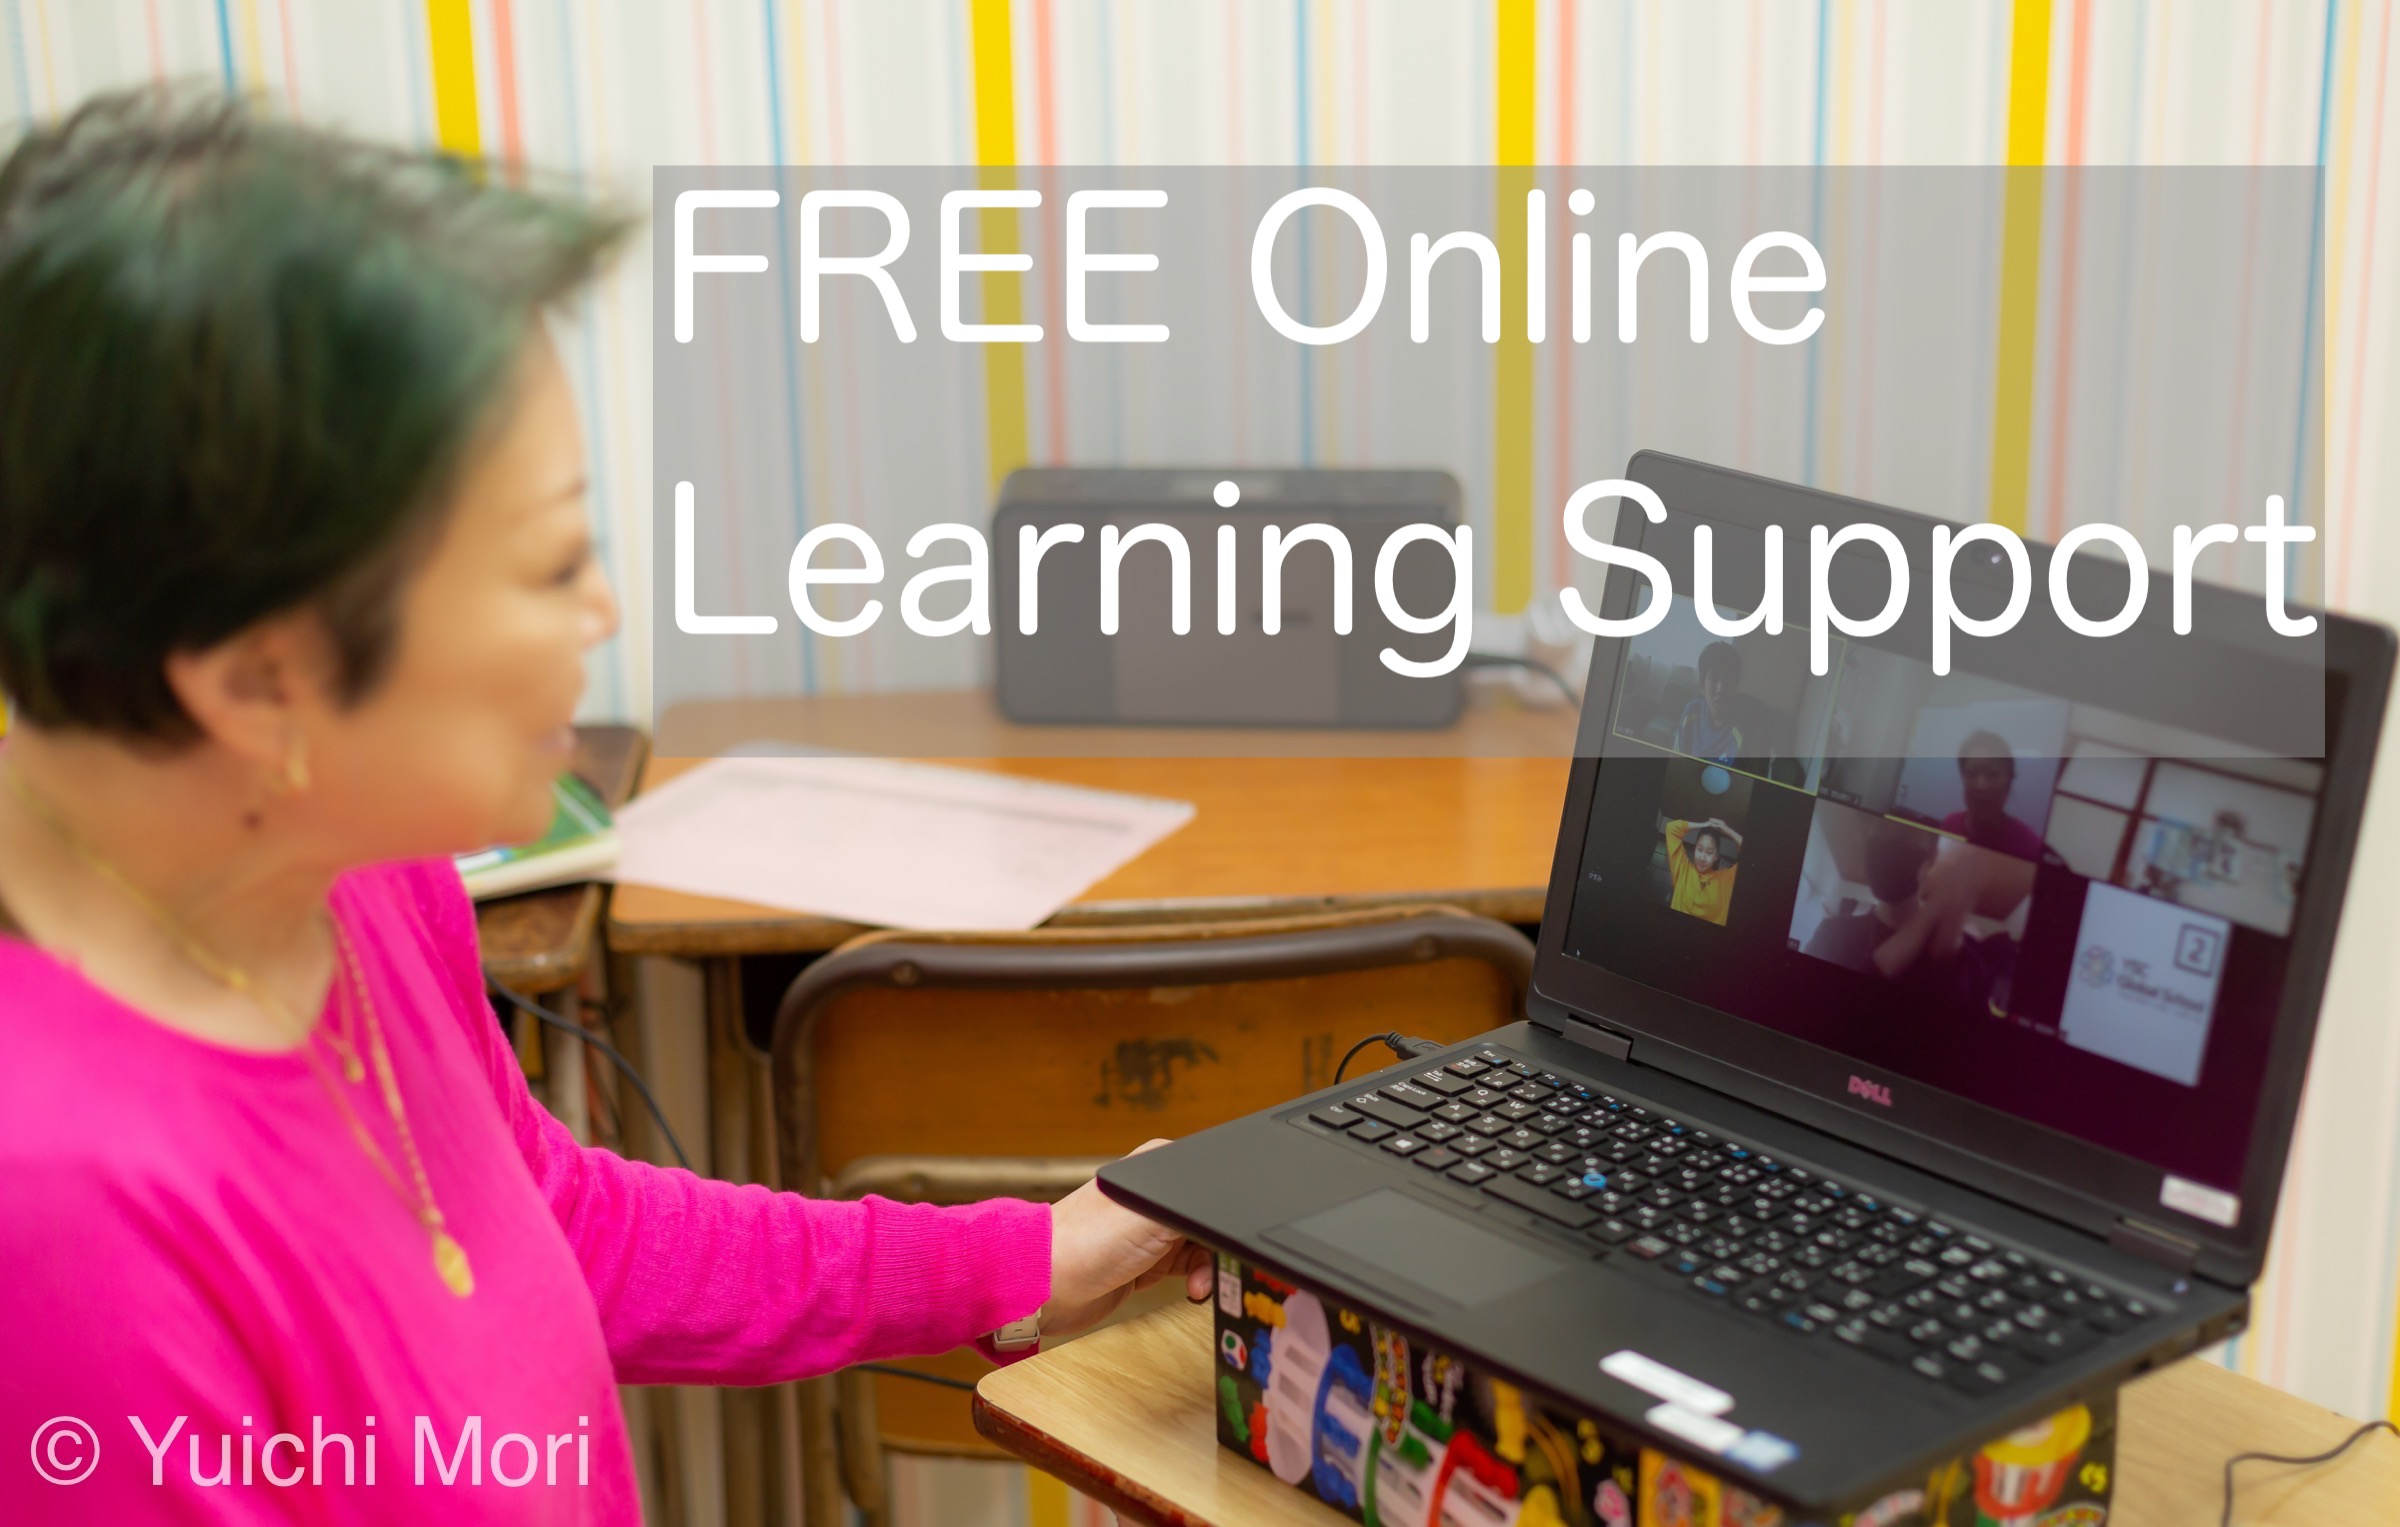 【多言語版】Zoom で べんきょう を おしえます。YSC Global School: Free Online Learning Support for Foreign Children in Japan